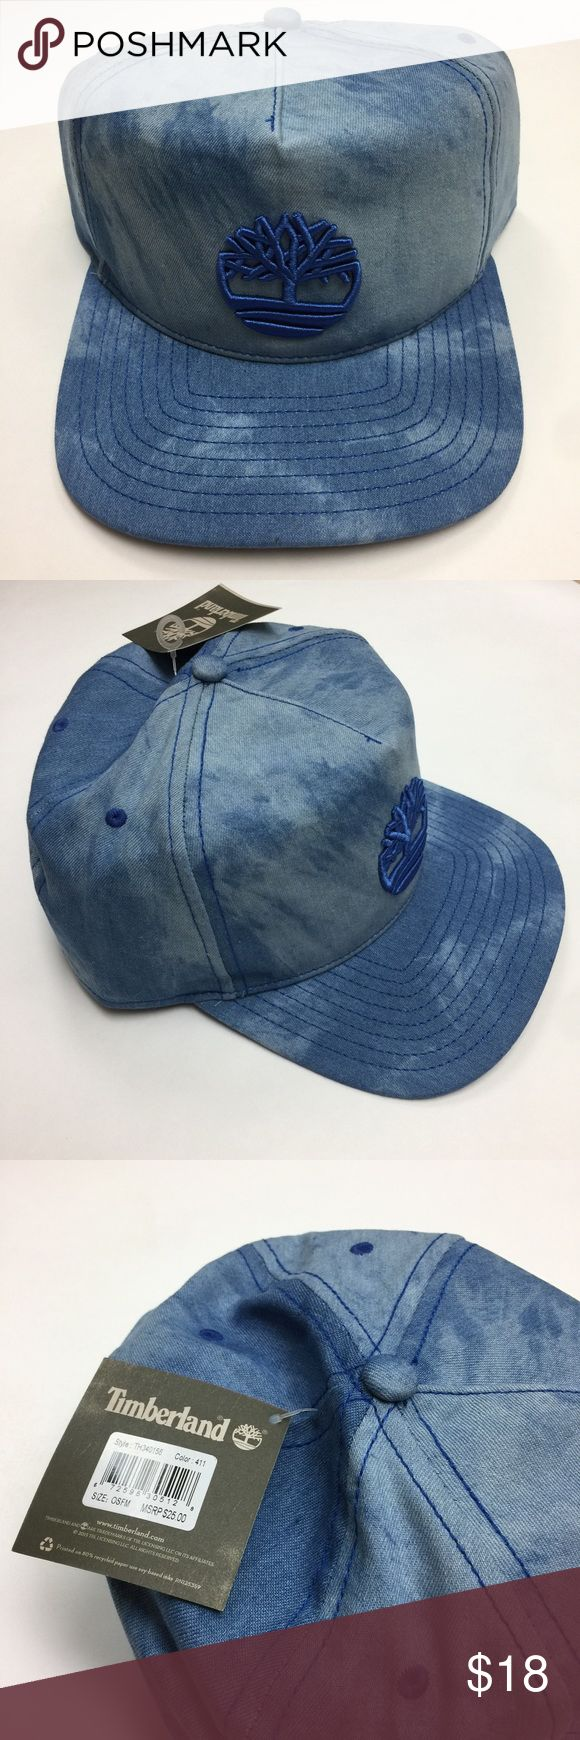 Timberland Denim Baseball Cap 🌷Please Read the description! Thanks!🌷  Brand new with tag Size: OS Retail: $25 Color may be slightly  different bcz of lighting  🌷Price is FIRM unless bundled 🌷NO Trades         🌷NO Holds 🌷All sales are final Timberland Accessories Hats